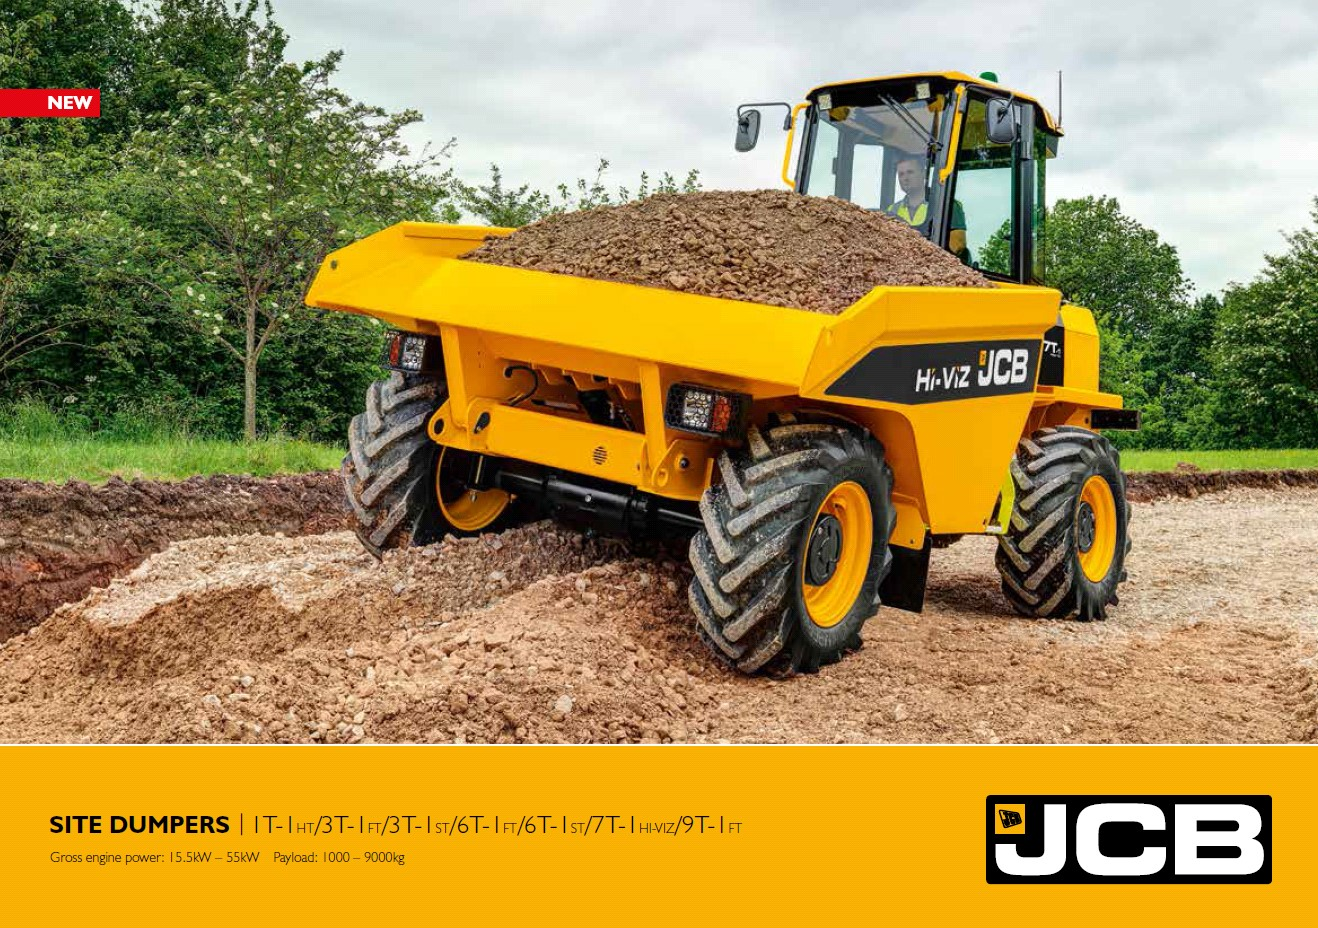 Cover Image of Site Dumper Brochure